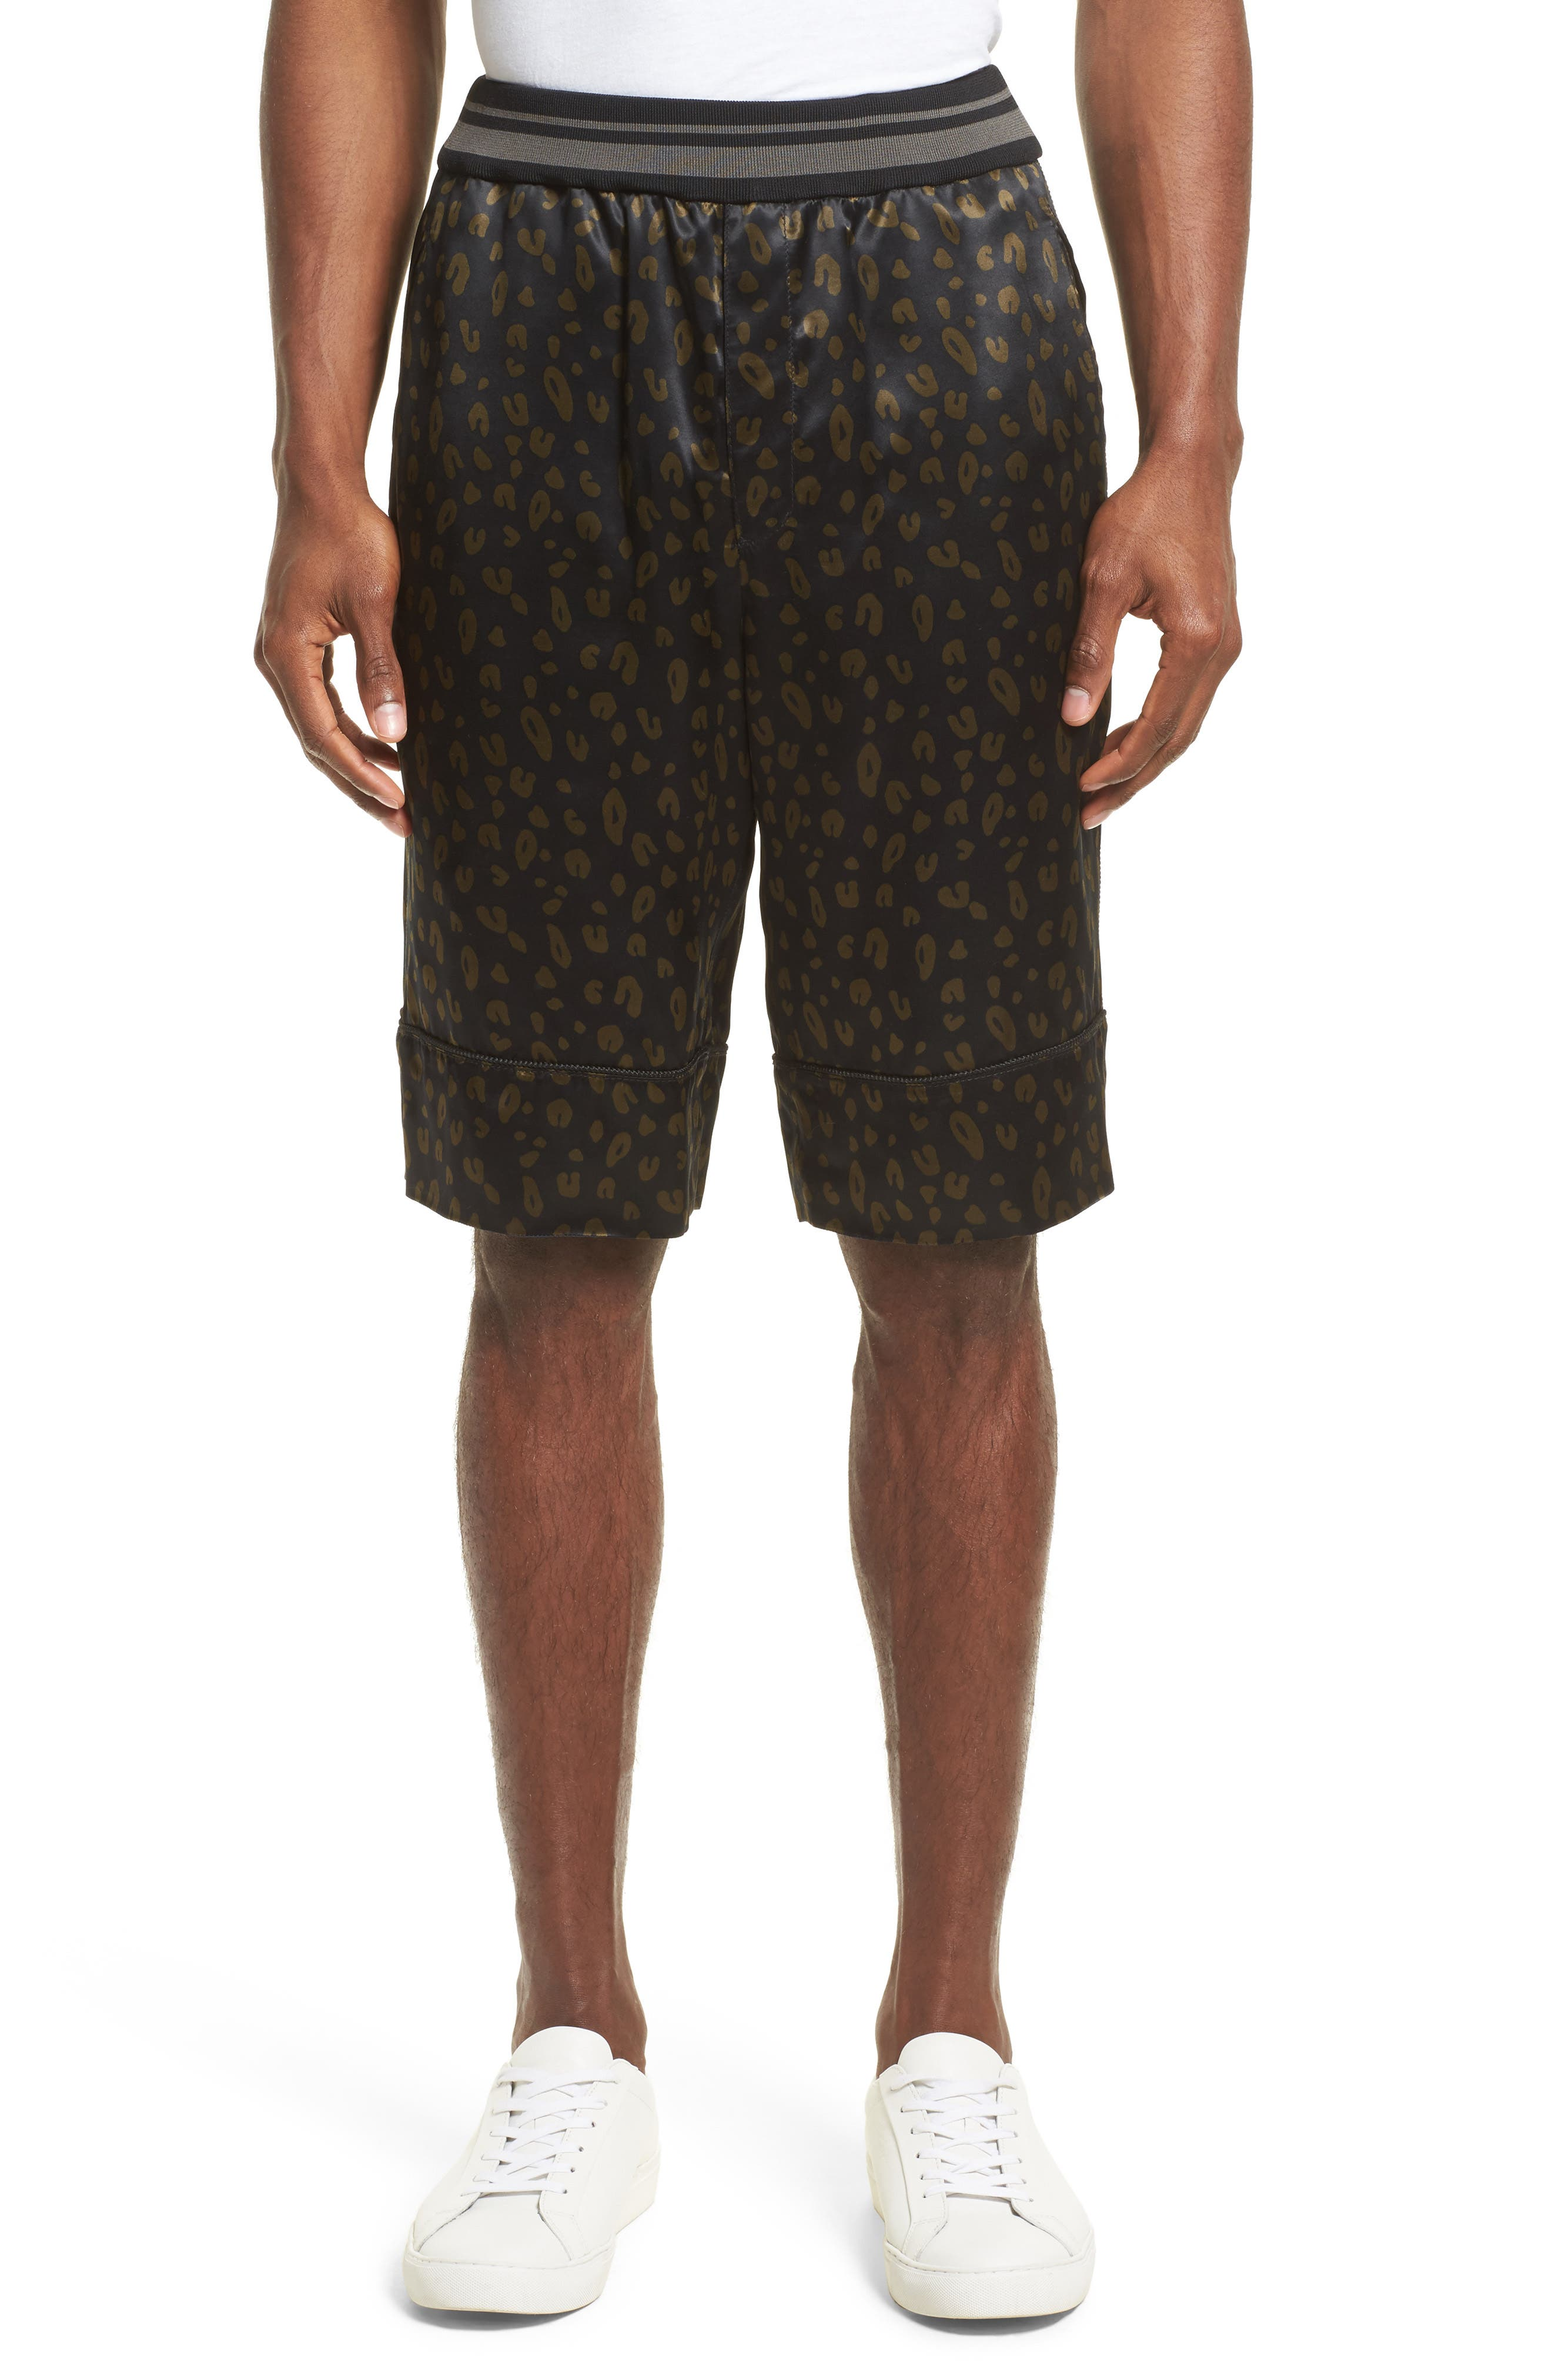 Alternate Image 1 Selected - 3.1 Phillip Lim Reversible Elastic Waist Shorts